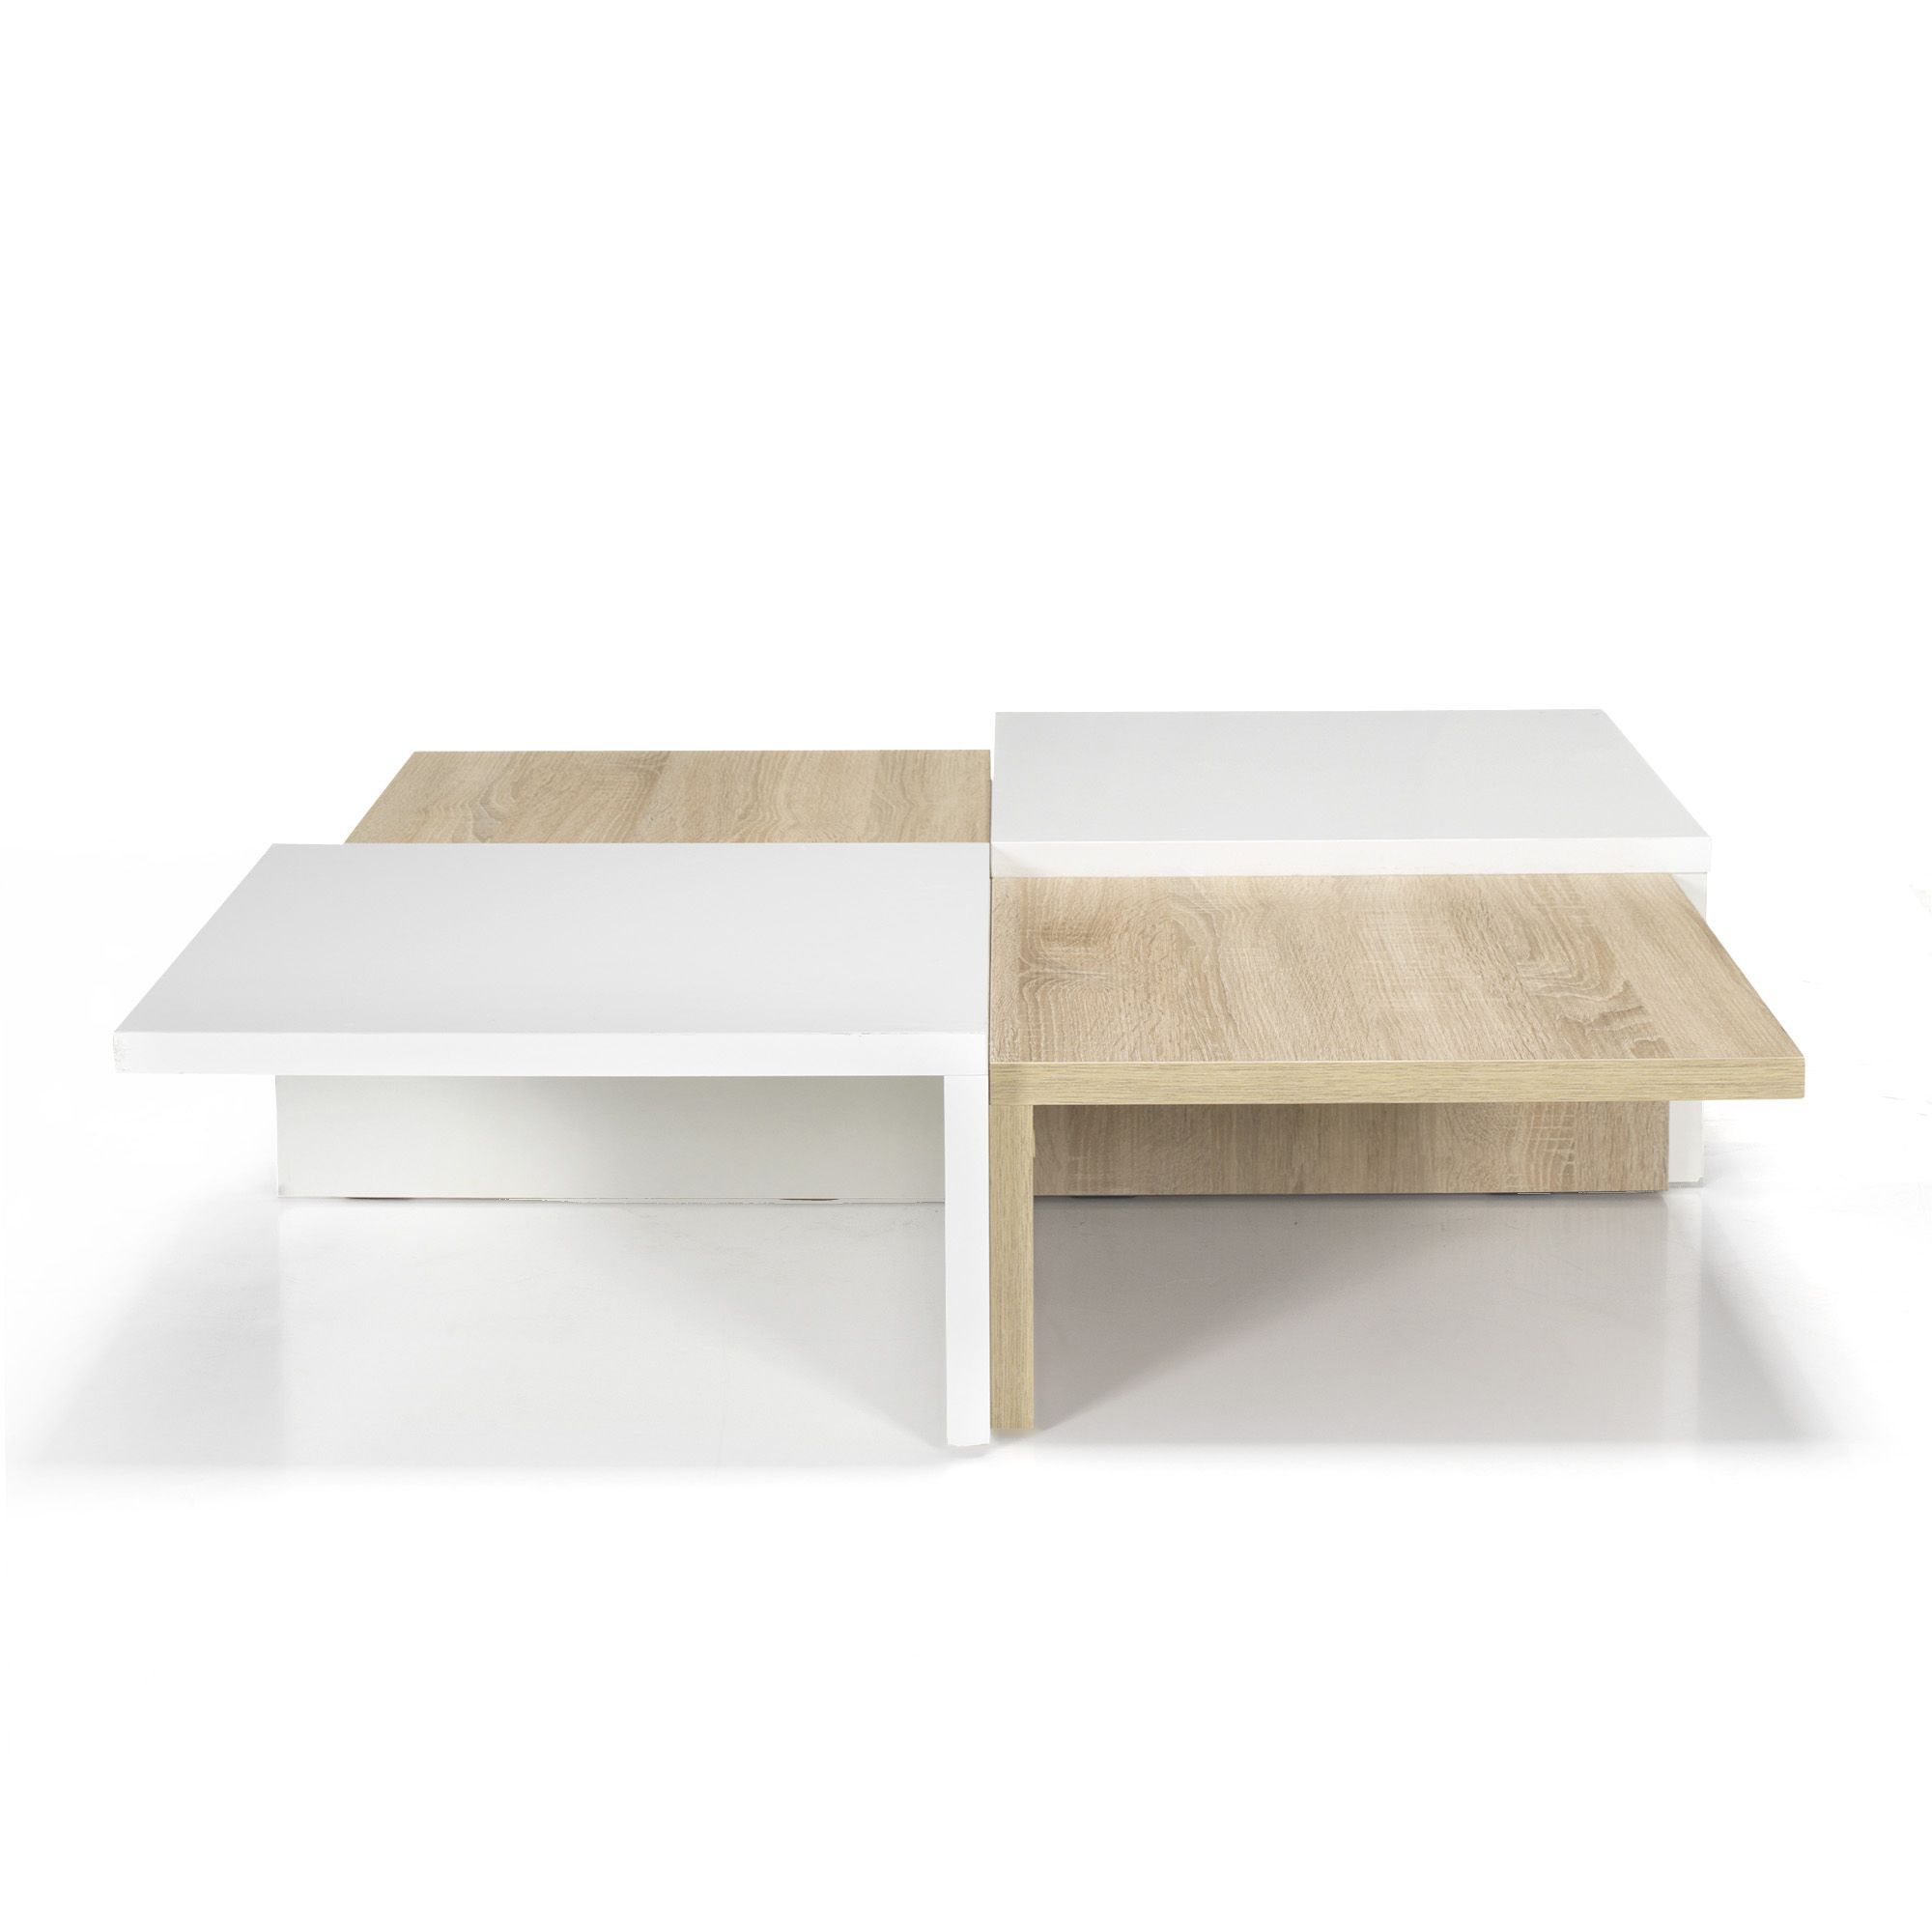 table basse carr e design scandinave blanc naturel checker les tables basses tables. Black Bedroom Furniture Sets. Home Design Ideas